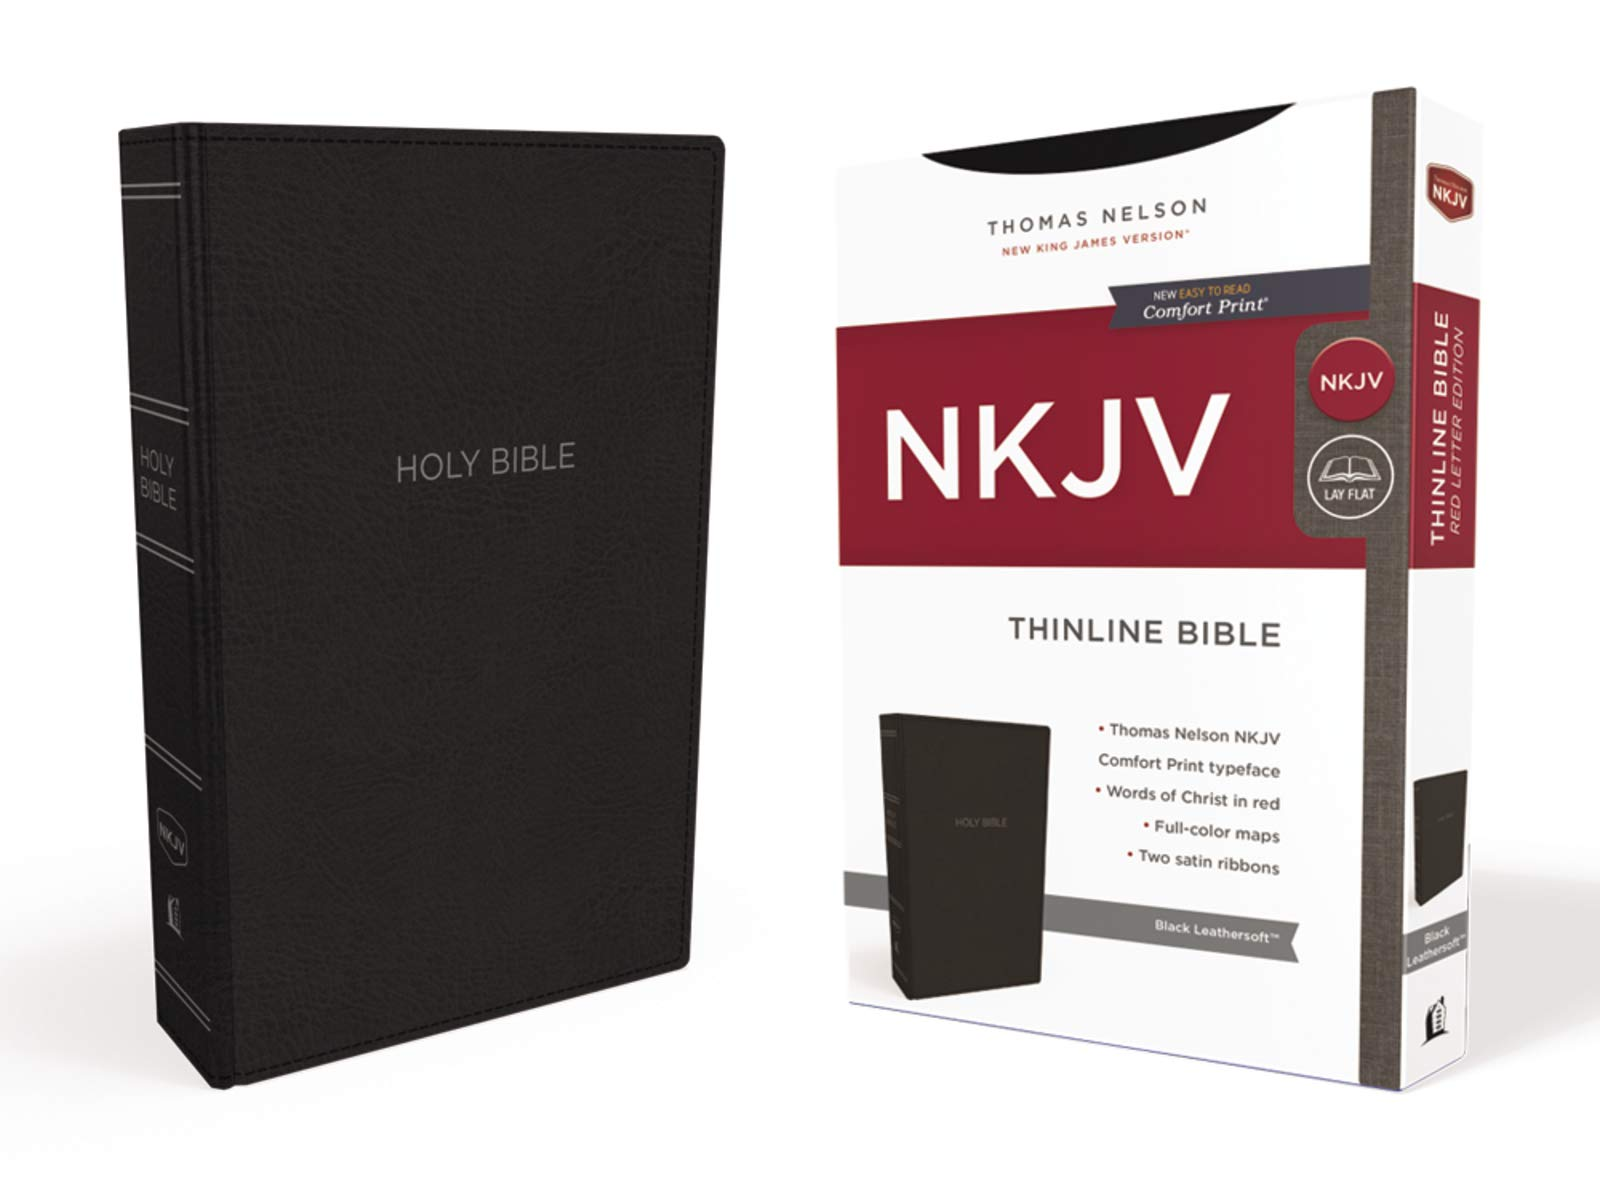 ROCKONLINE | New Creation Church | NCC | Joseph Prince | NKJV Thinline, Leathersoft Black, Comfort Print | ROCK Bookshop | ROCK Bookstore | Star Vista | New King James | Thomas Nelson | Bibles | Free delivery for Singapore Orders above $50.